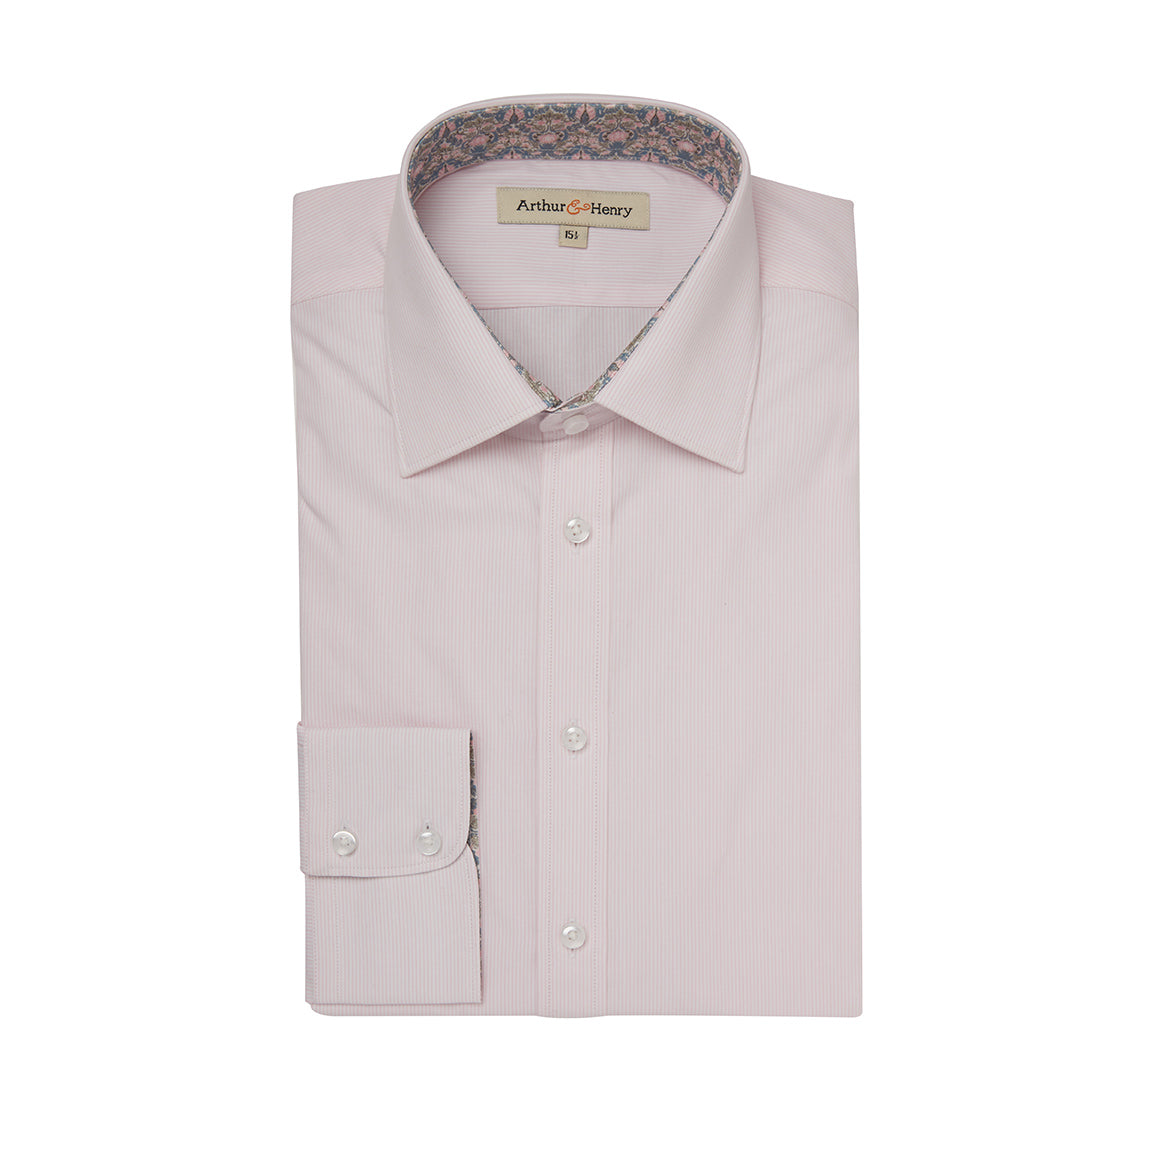 Men's pink organic cotton shirt with William Morris print trim